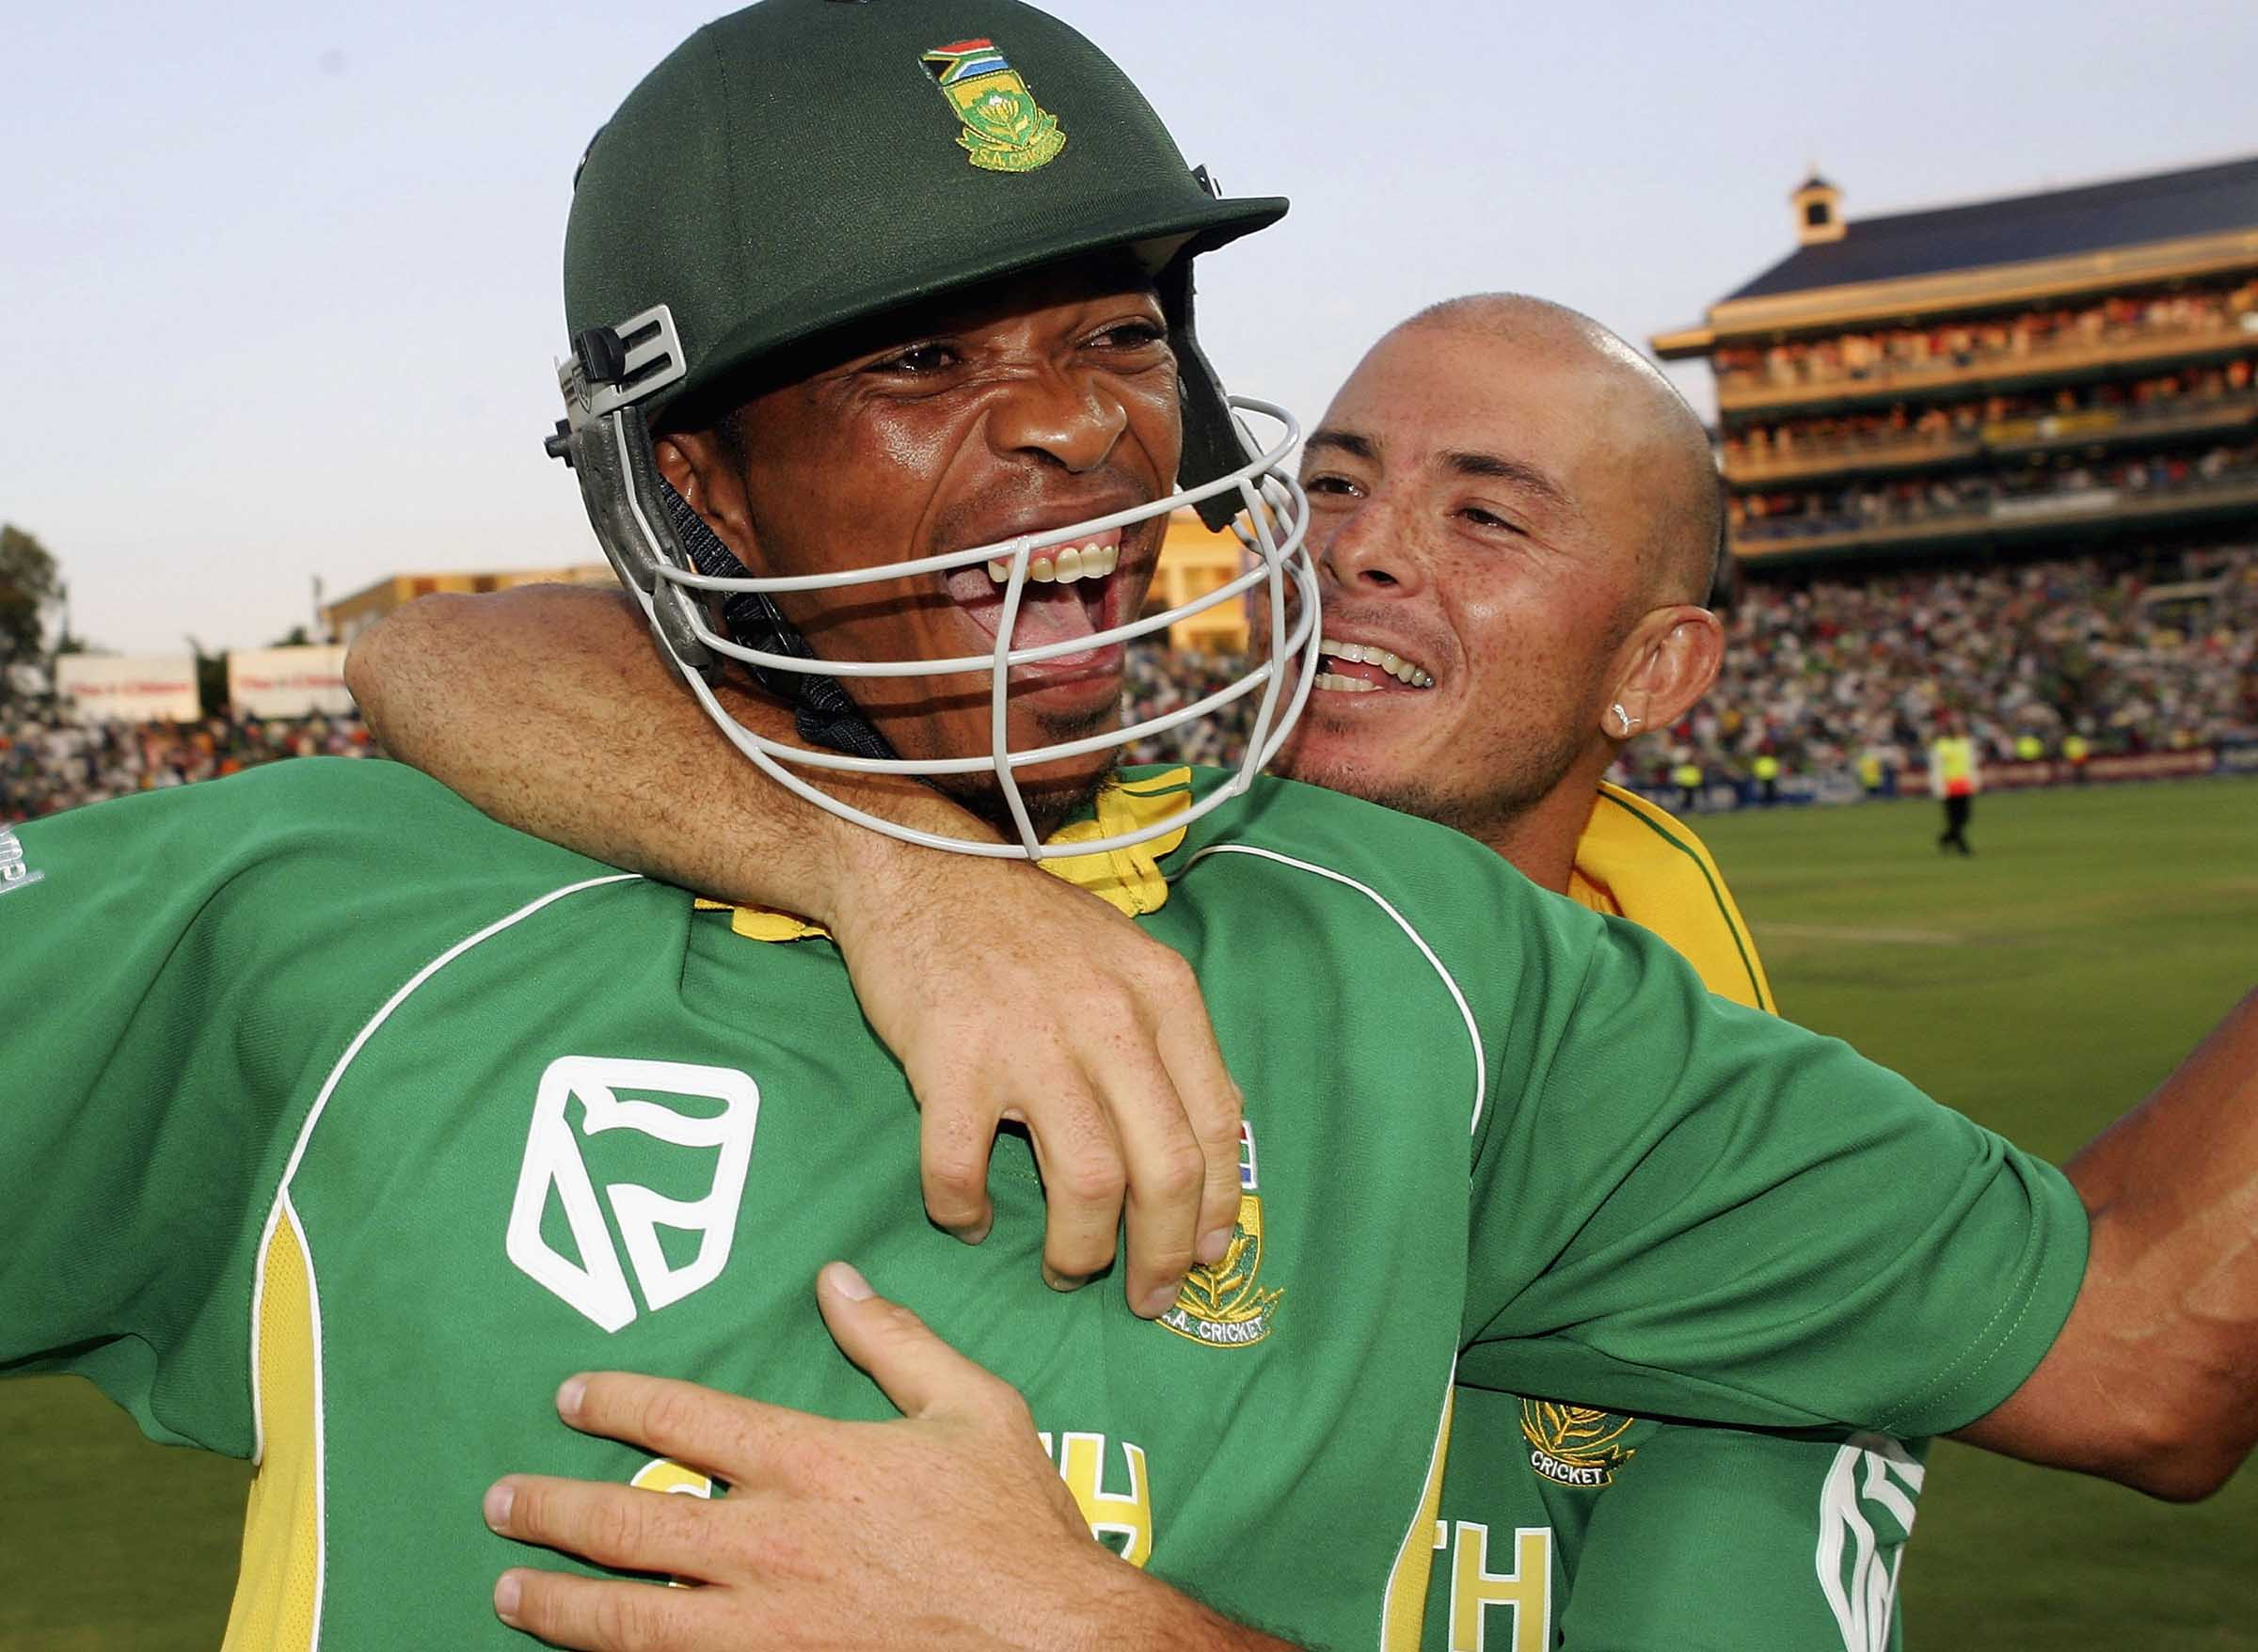 Ntini and Gibbs ecstatic after the winning runs are hit // Getty